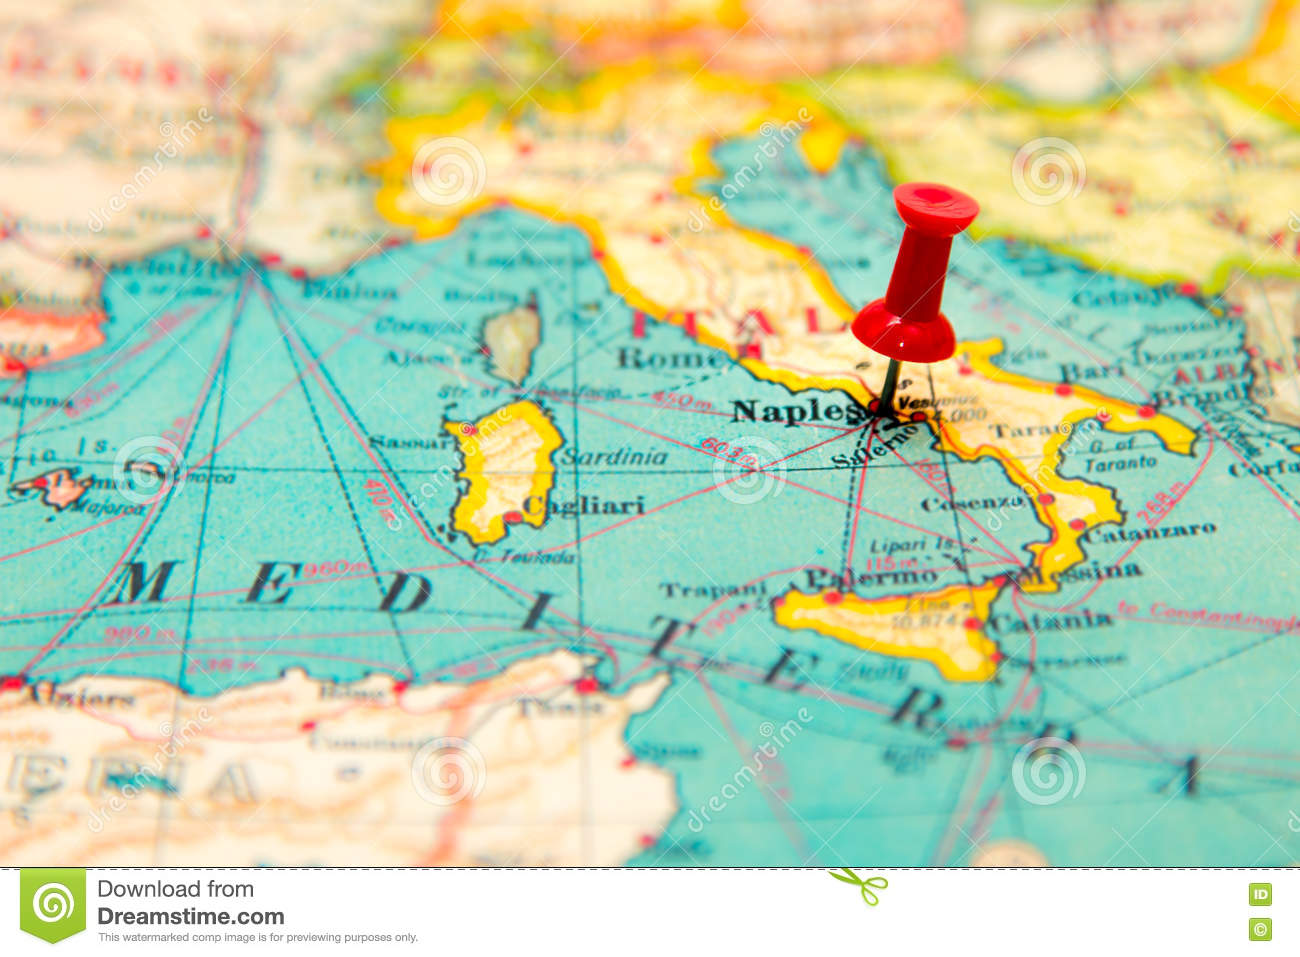 Naples, Italy Pinned On Vintage Map Of Europe Stock Image - Image of ...